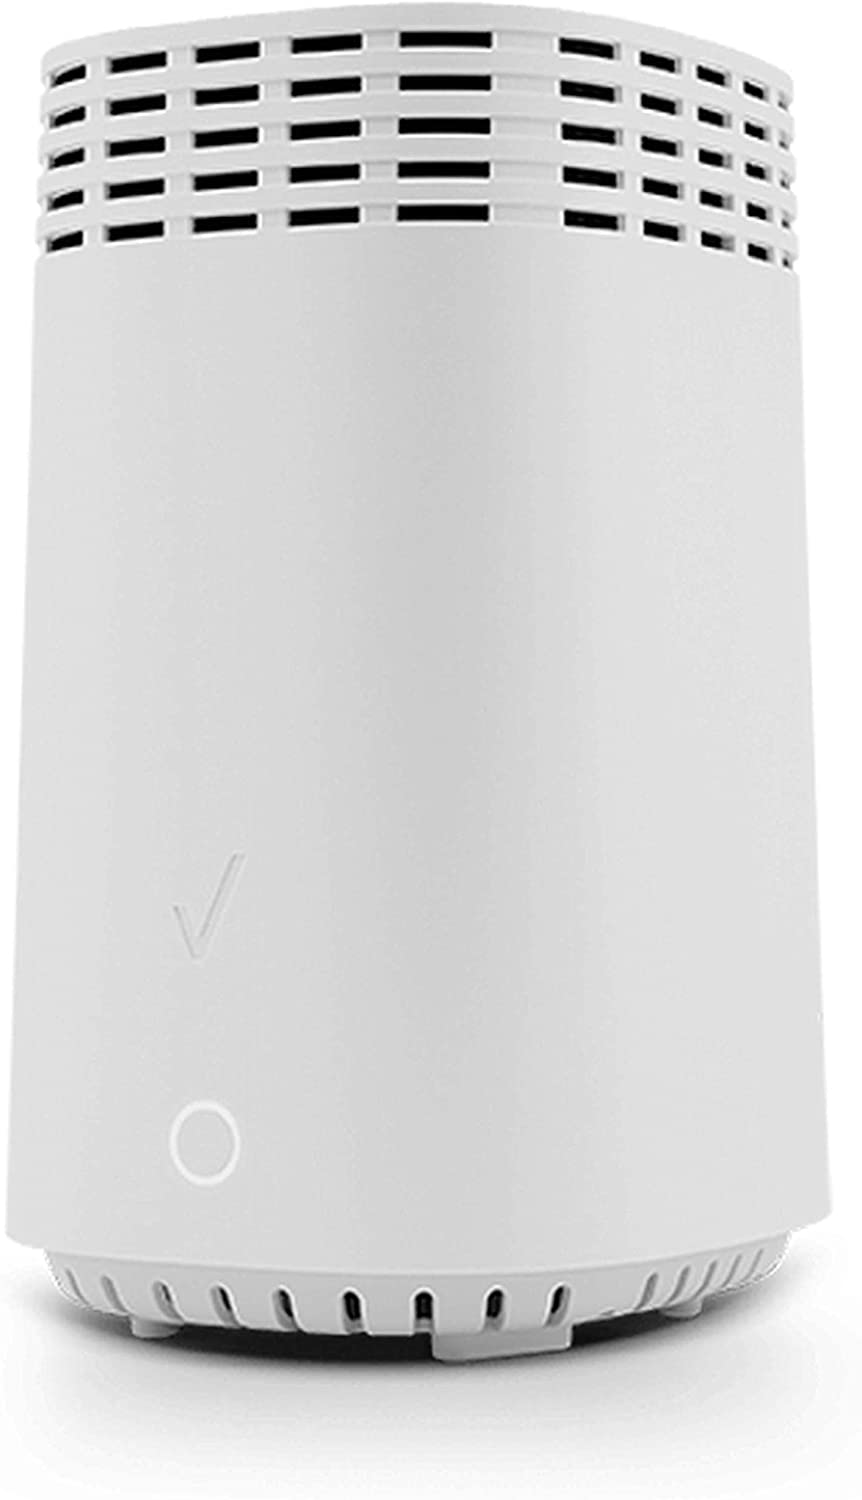 Verizon/Fios Home Router G3100